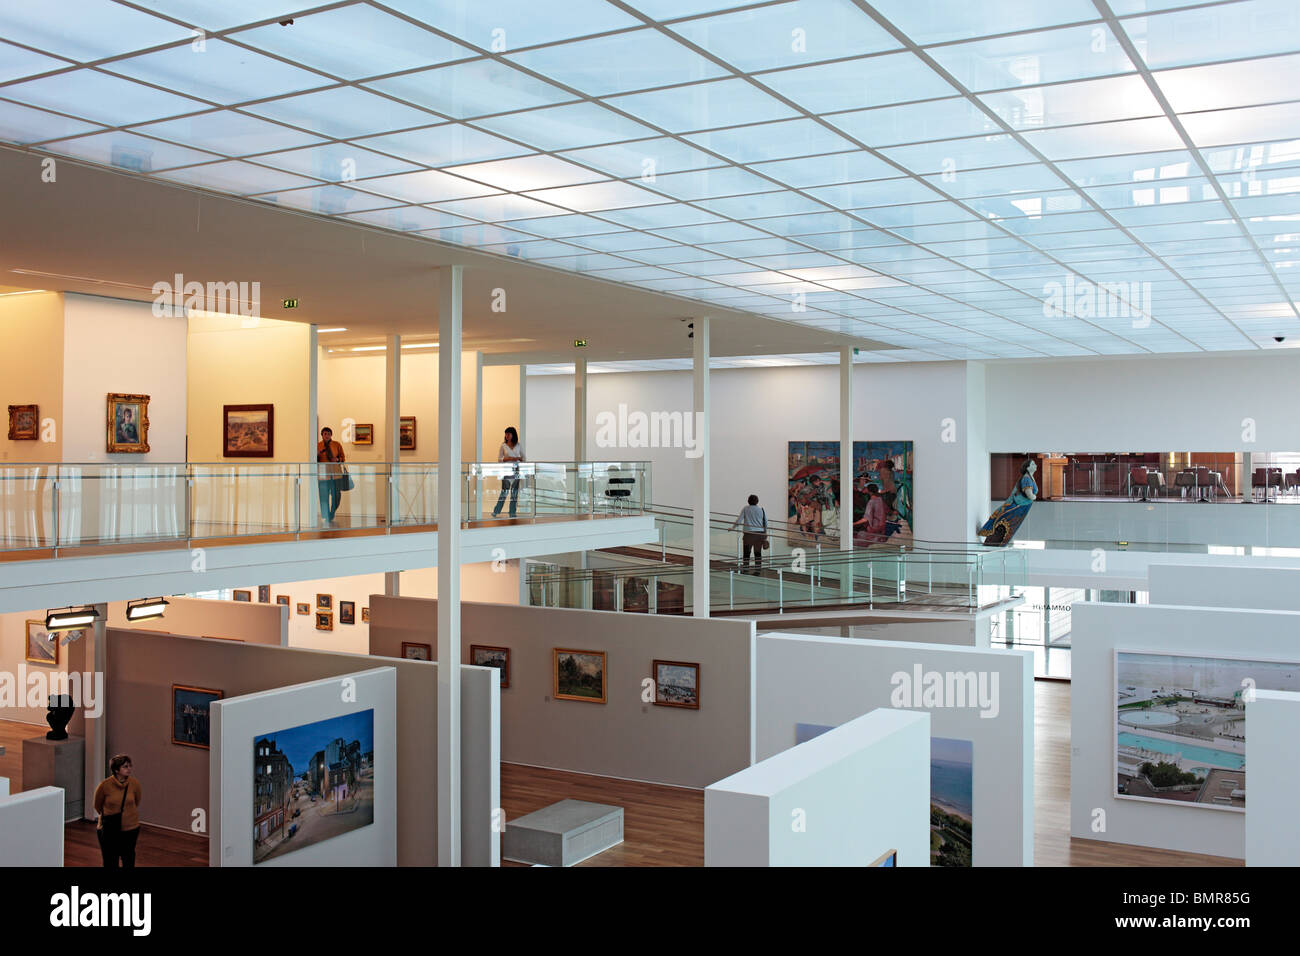 musee des beaux arts andre malraux le havre seine maritime stock photo royalty free image. Black Bedroom Furniture Sets. Home Design Ideas